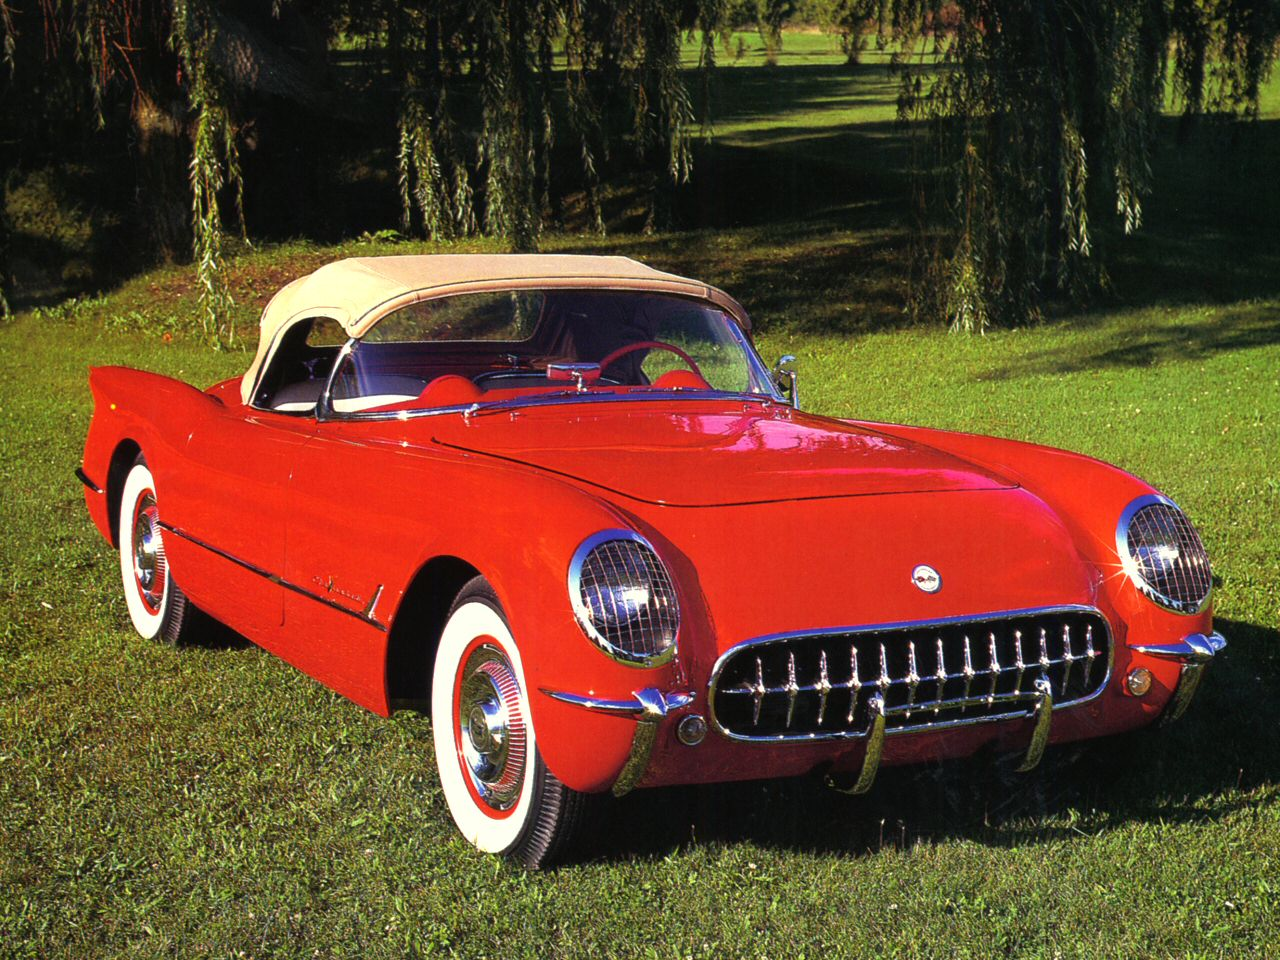 1955 Chevrolet Corvette 265 V 8 Roadster Red Fvr